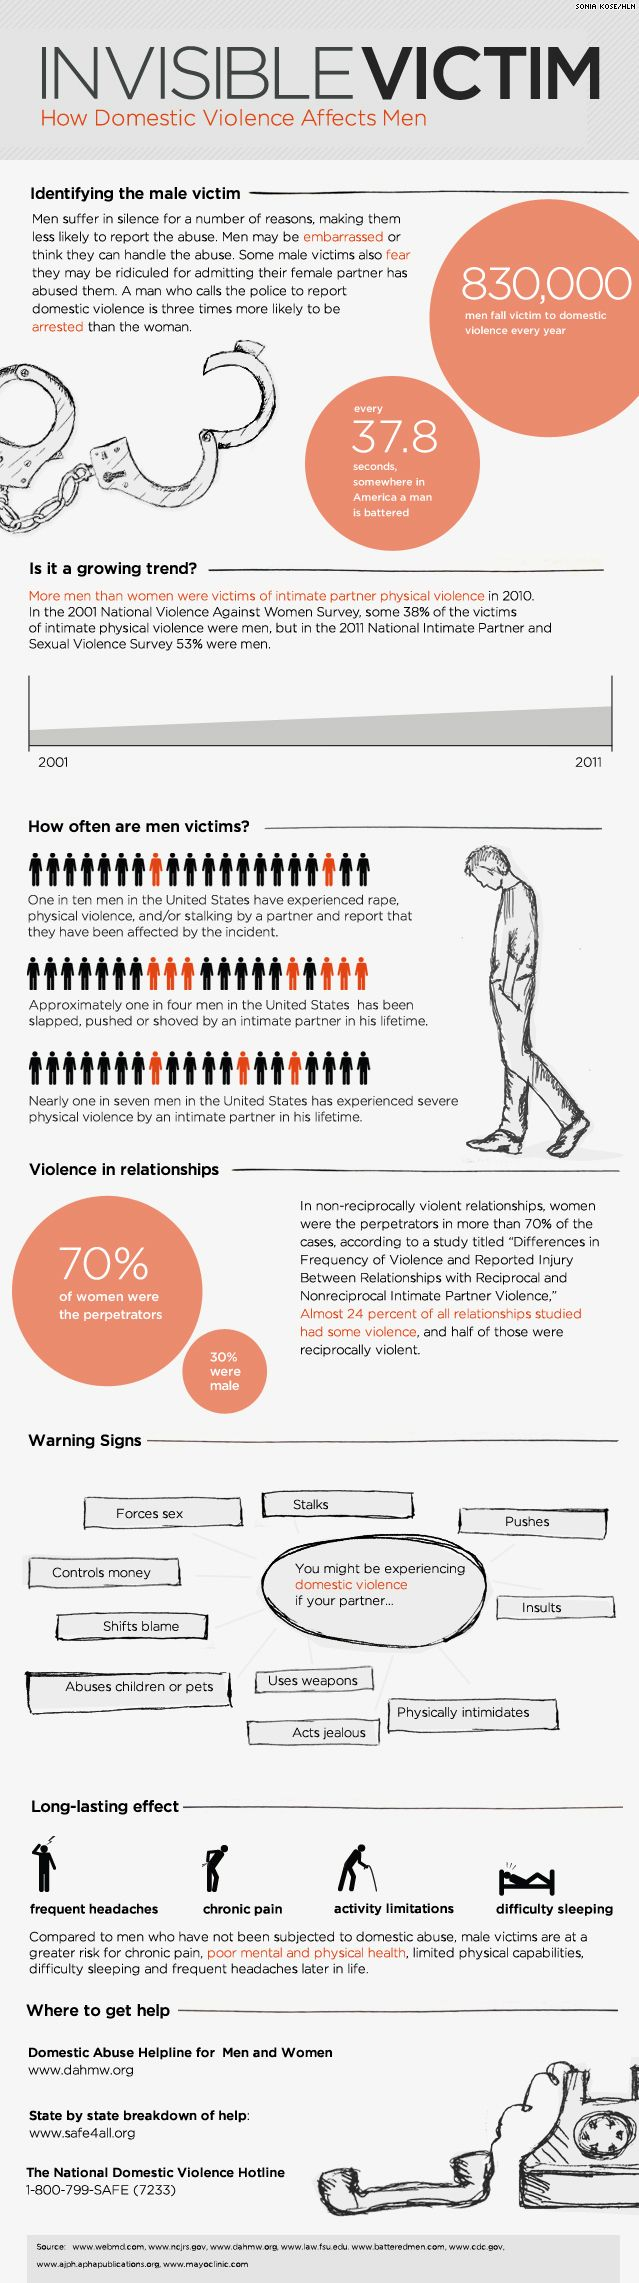 Men who suffer from domestic violence are rarely acknowledged. This infographic breaks down the effects.